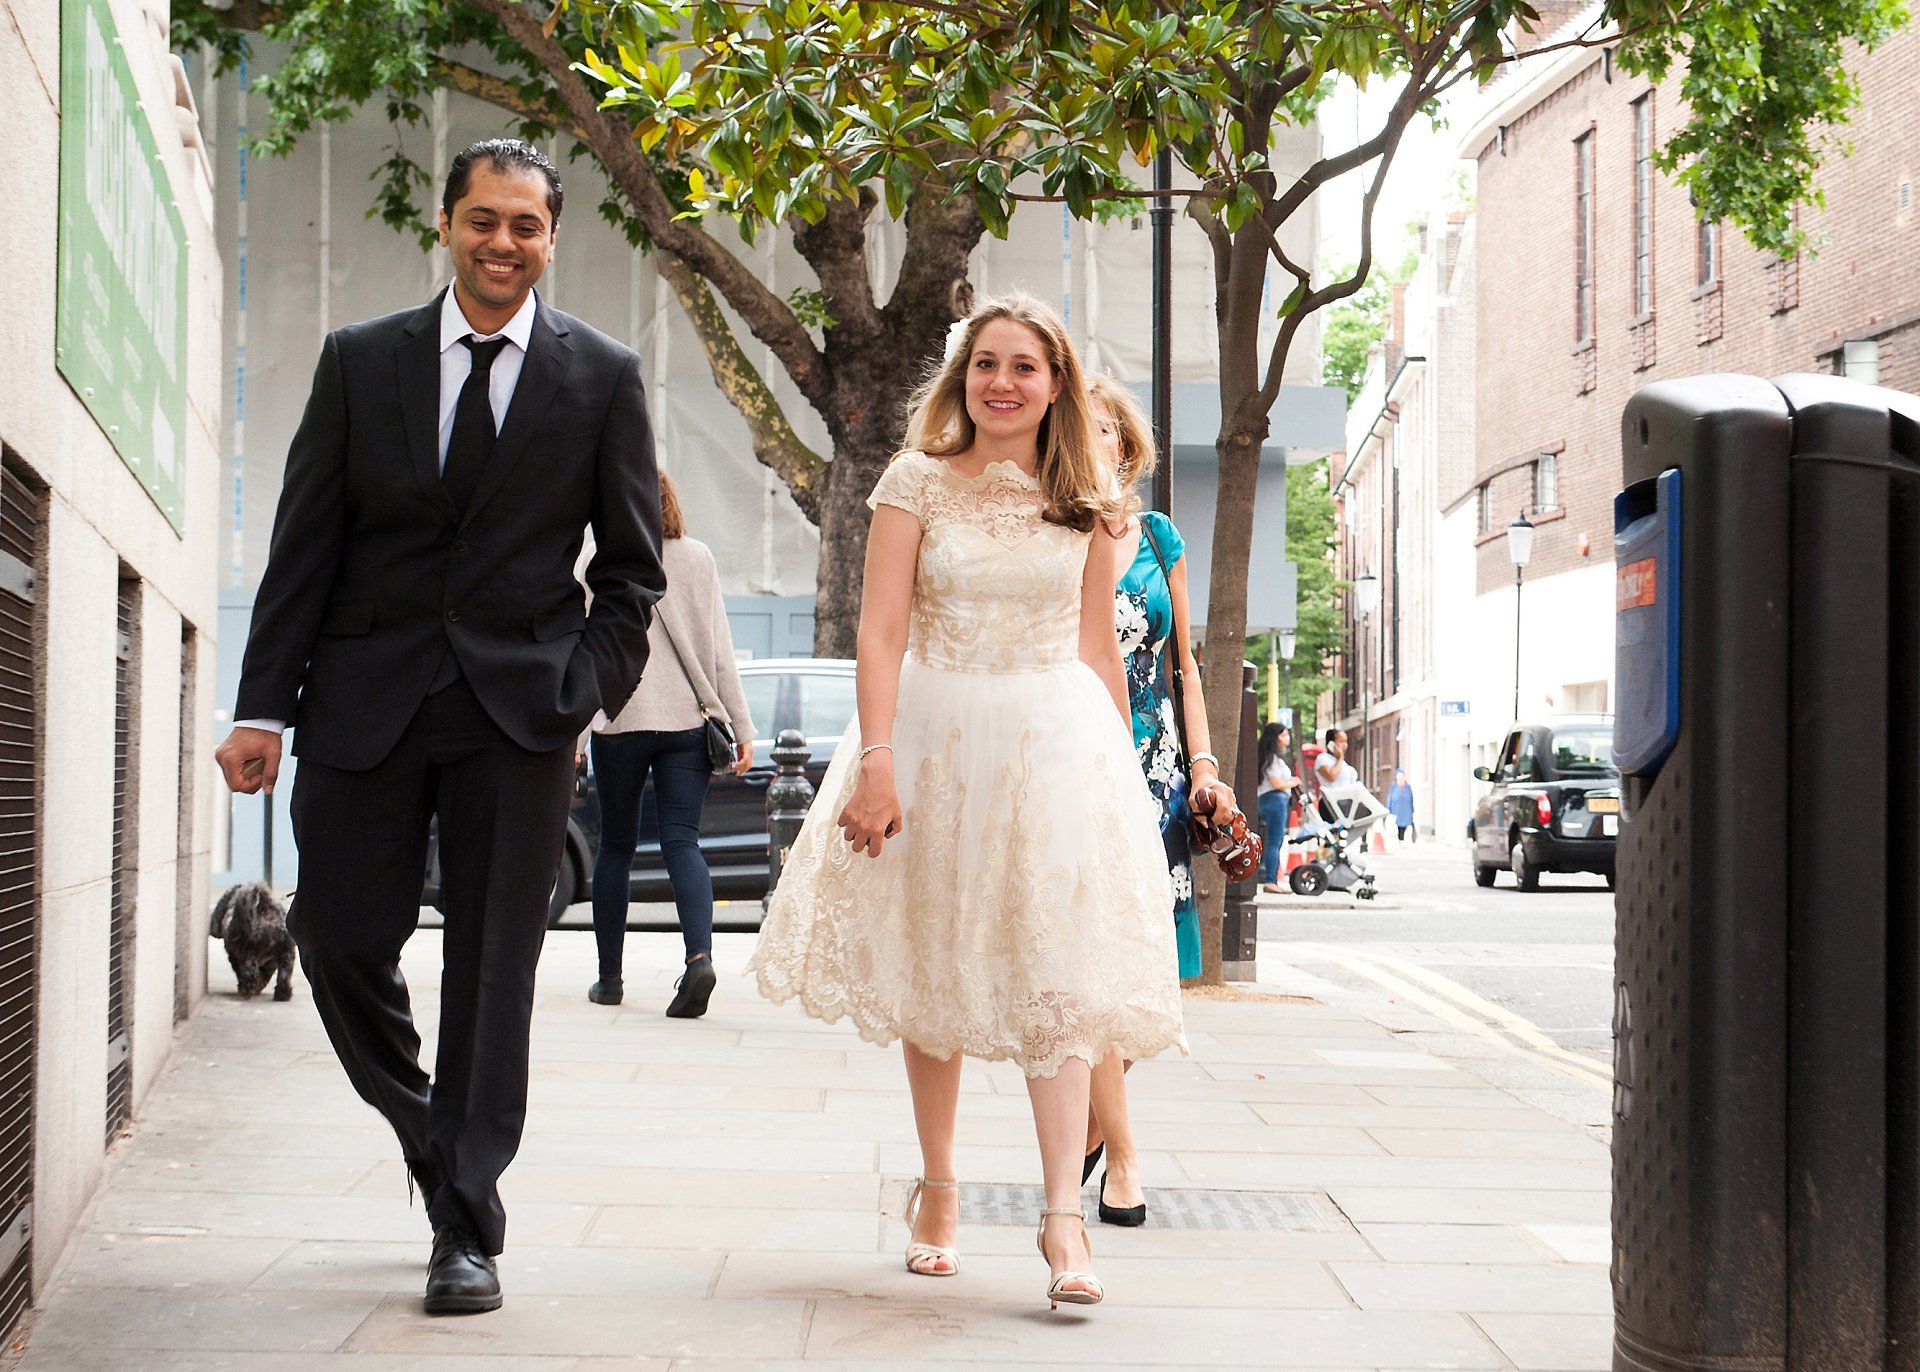 The bride and groom arriving at Chelsea Registry Office on the King's Road